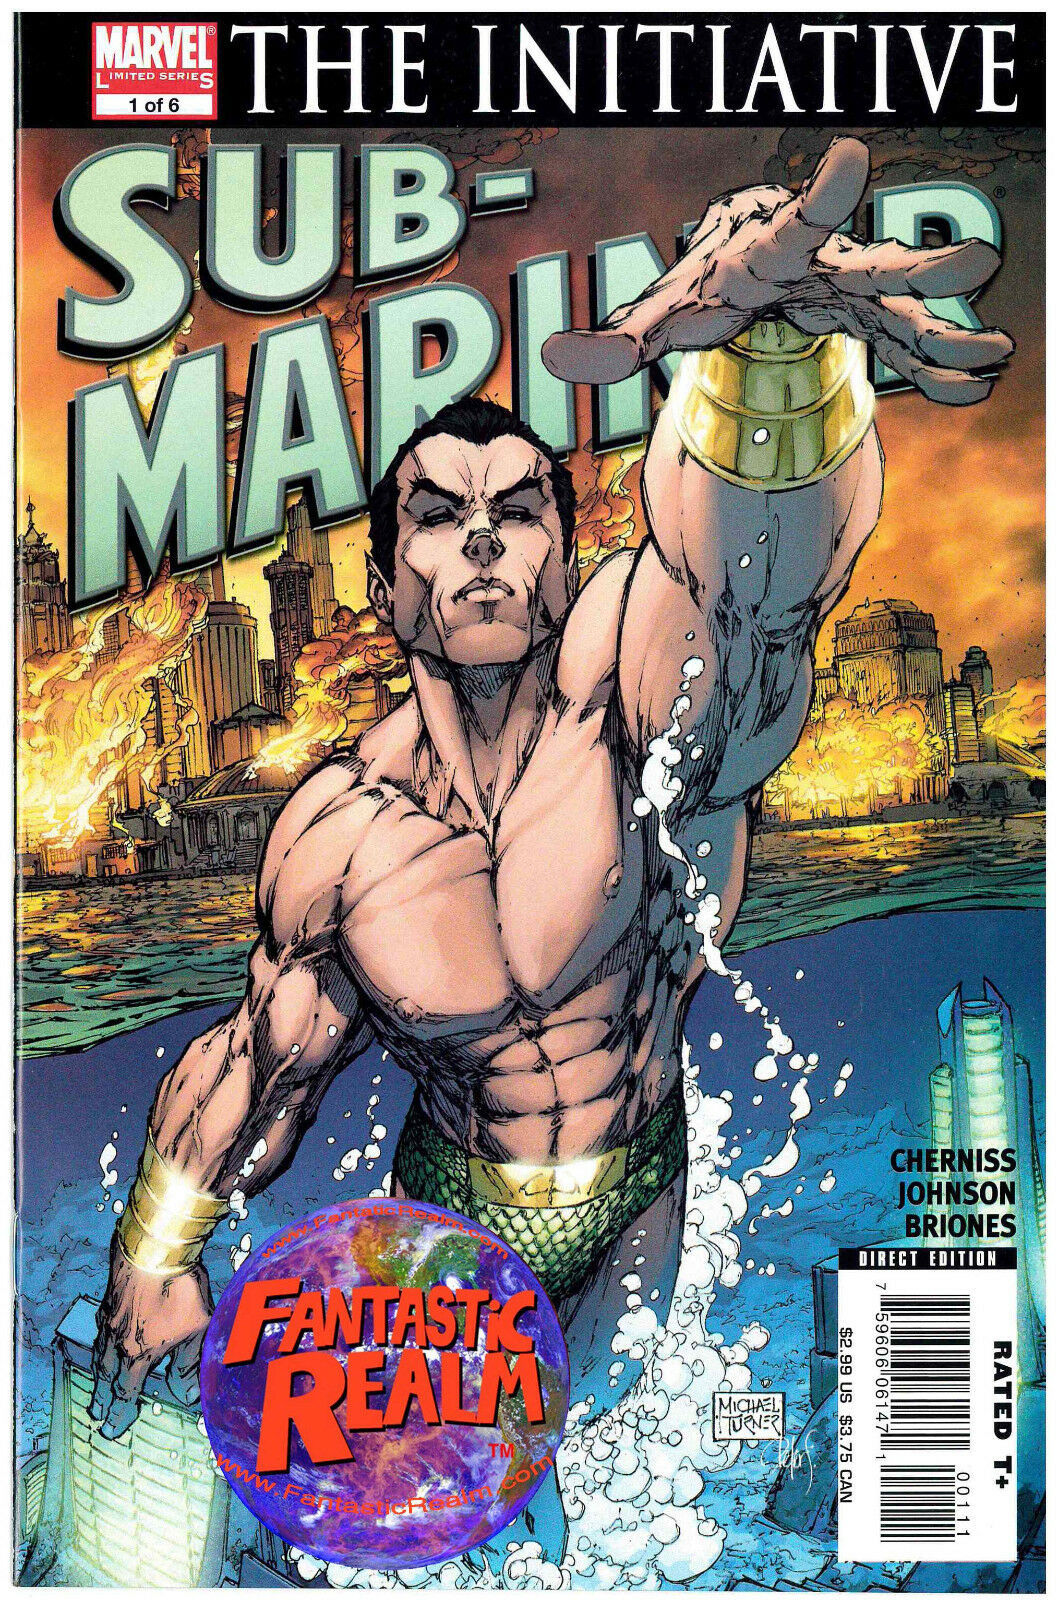 SUB-MARINER #1 TURNER COVER & 2 OF 6: THE INITIATIVE MARVEL COMICS